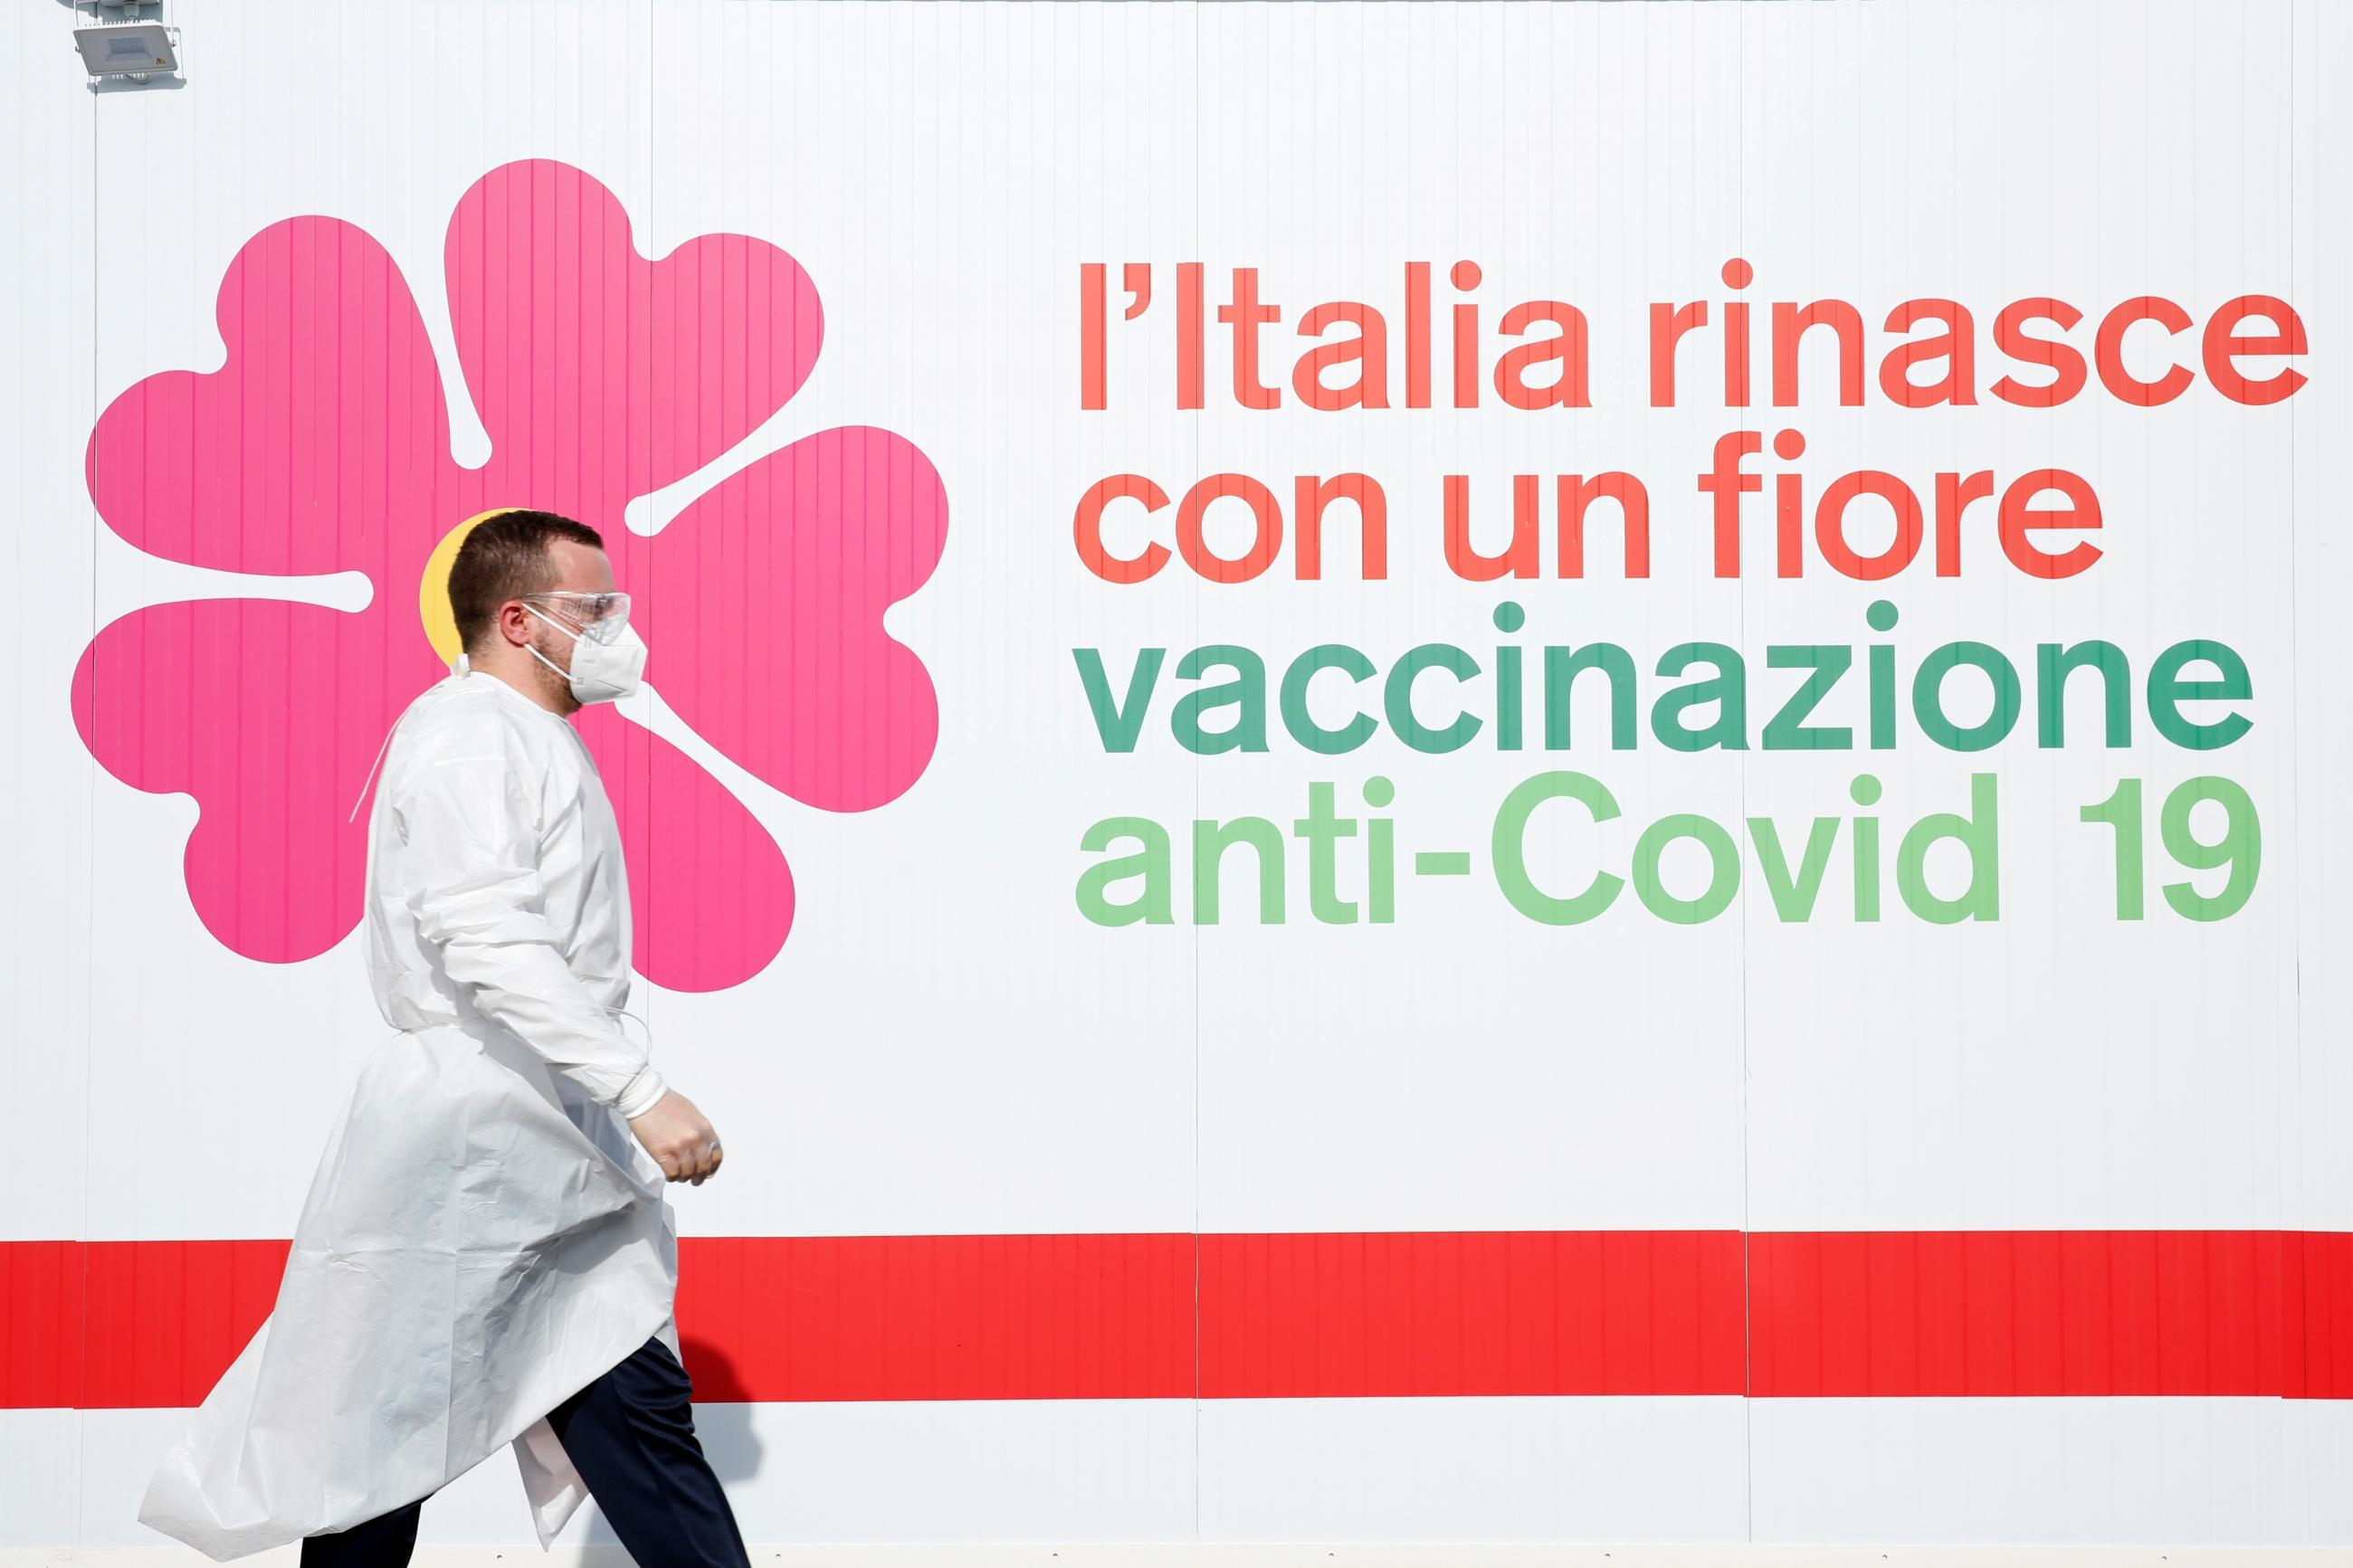 A man walks outside a tent during preparations to turn the long-term car park at Fiumicino airport into a coronavirus disease (COVID-19) vaccination centre, in Rome, Italy, February 5, 2021.